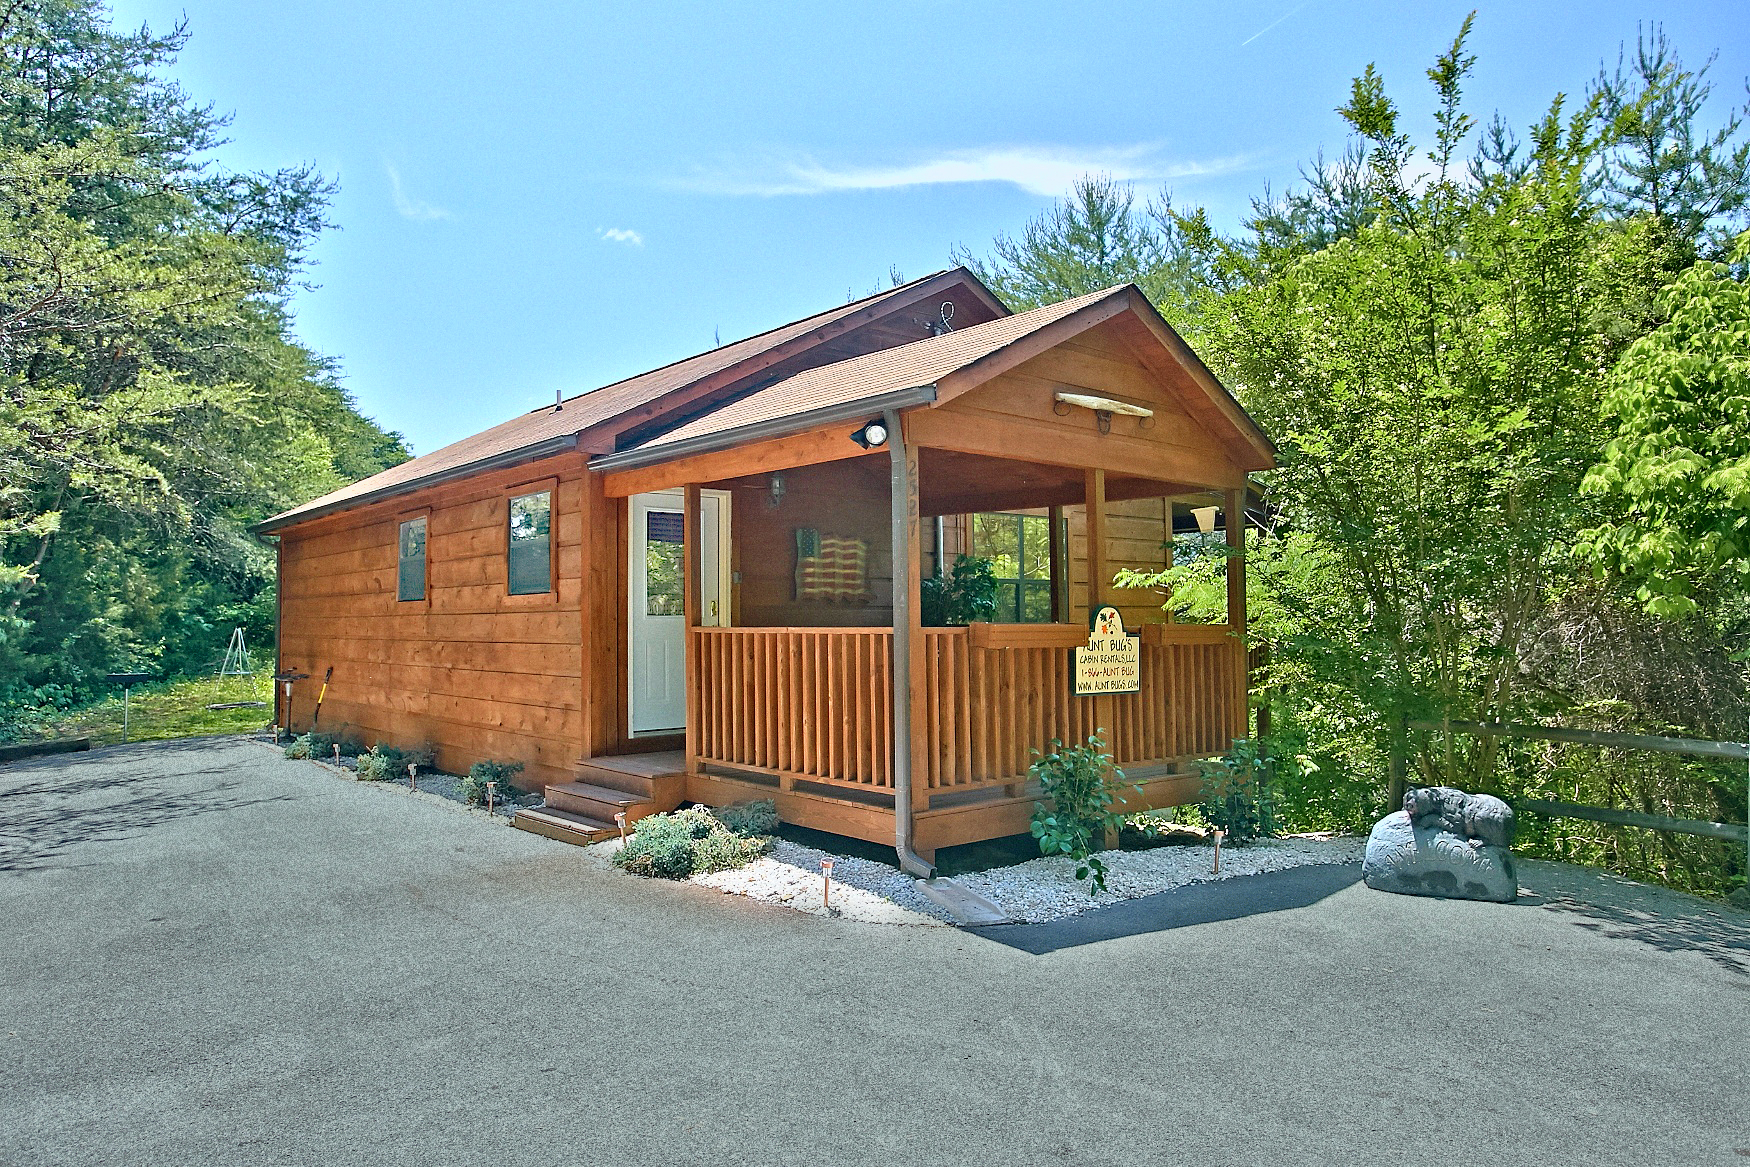 rentals fireside sets rental secret bedroom contemporary tennessee e s of wear valley cabin tn new cabins and rendezvous forge cheap chalet pigeon in gatlinburg attachment our